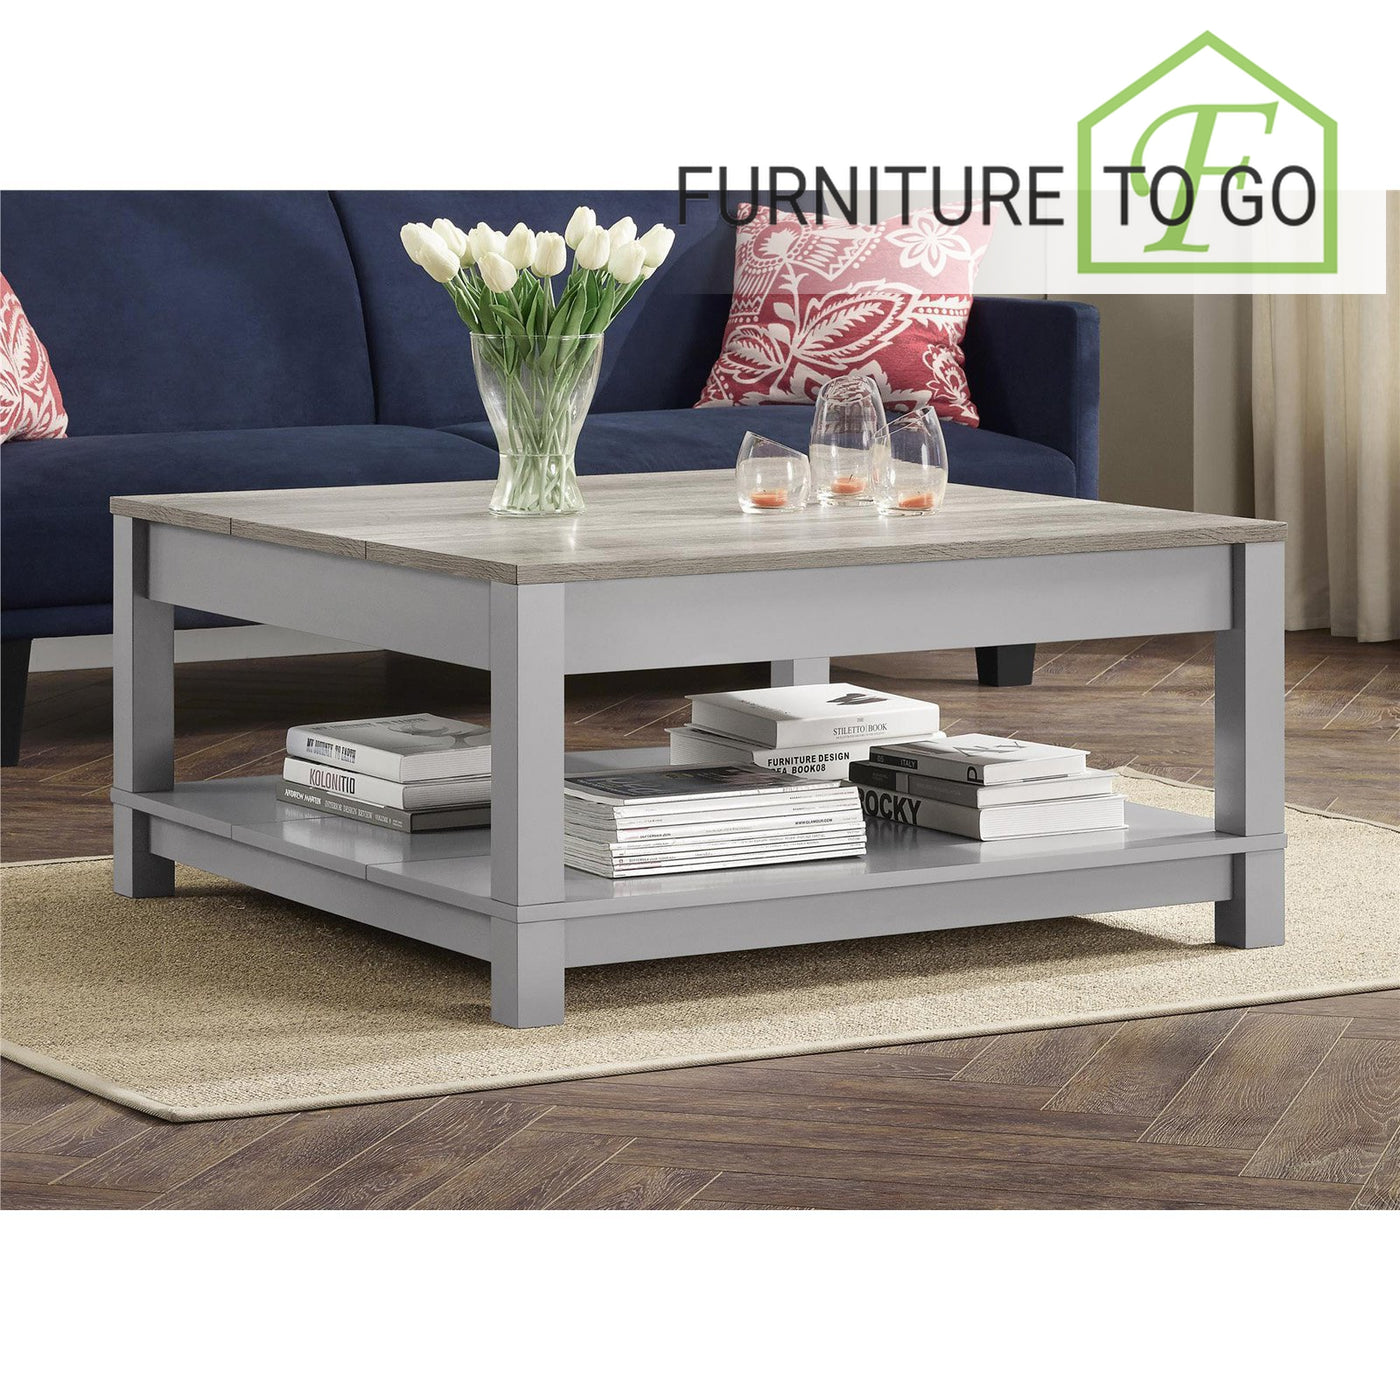 Fabulous Clearance Furniture In Dallas 99 99 Grey Weathered Oak Carver Square Coffee Table Pabps2019 Chair Design Images Pabps2019Com